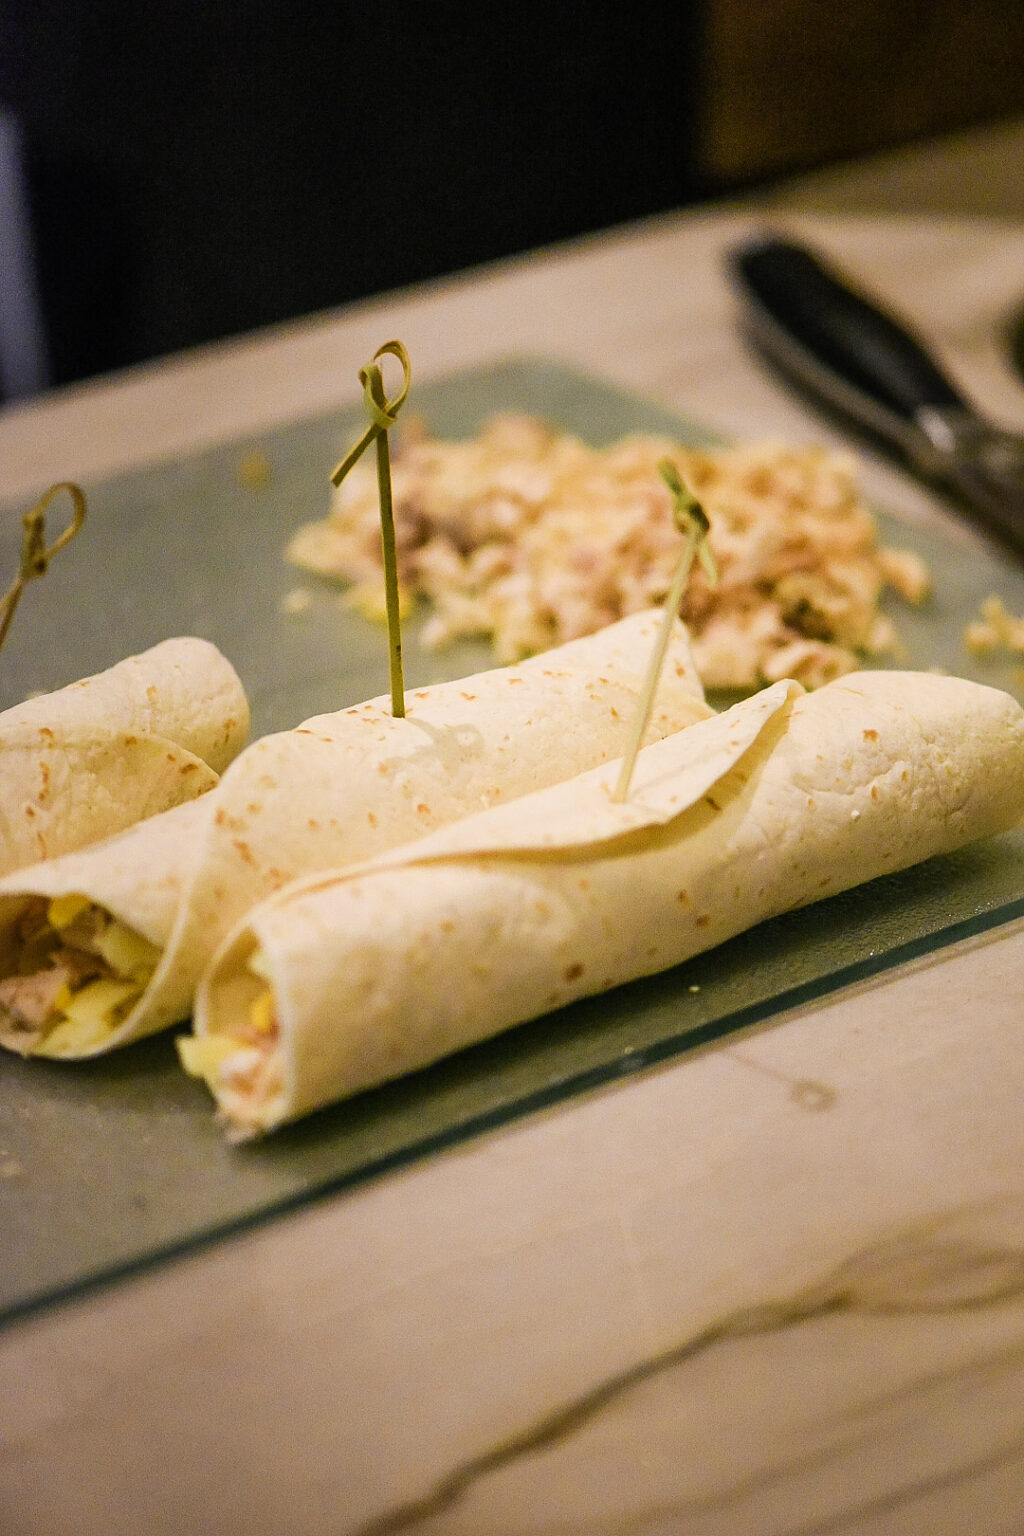 Shredded Chicken Flautas